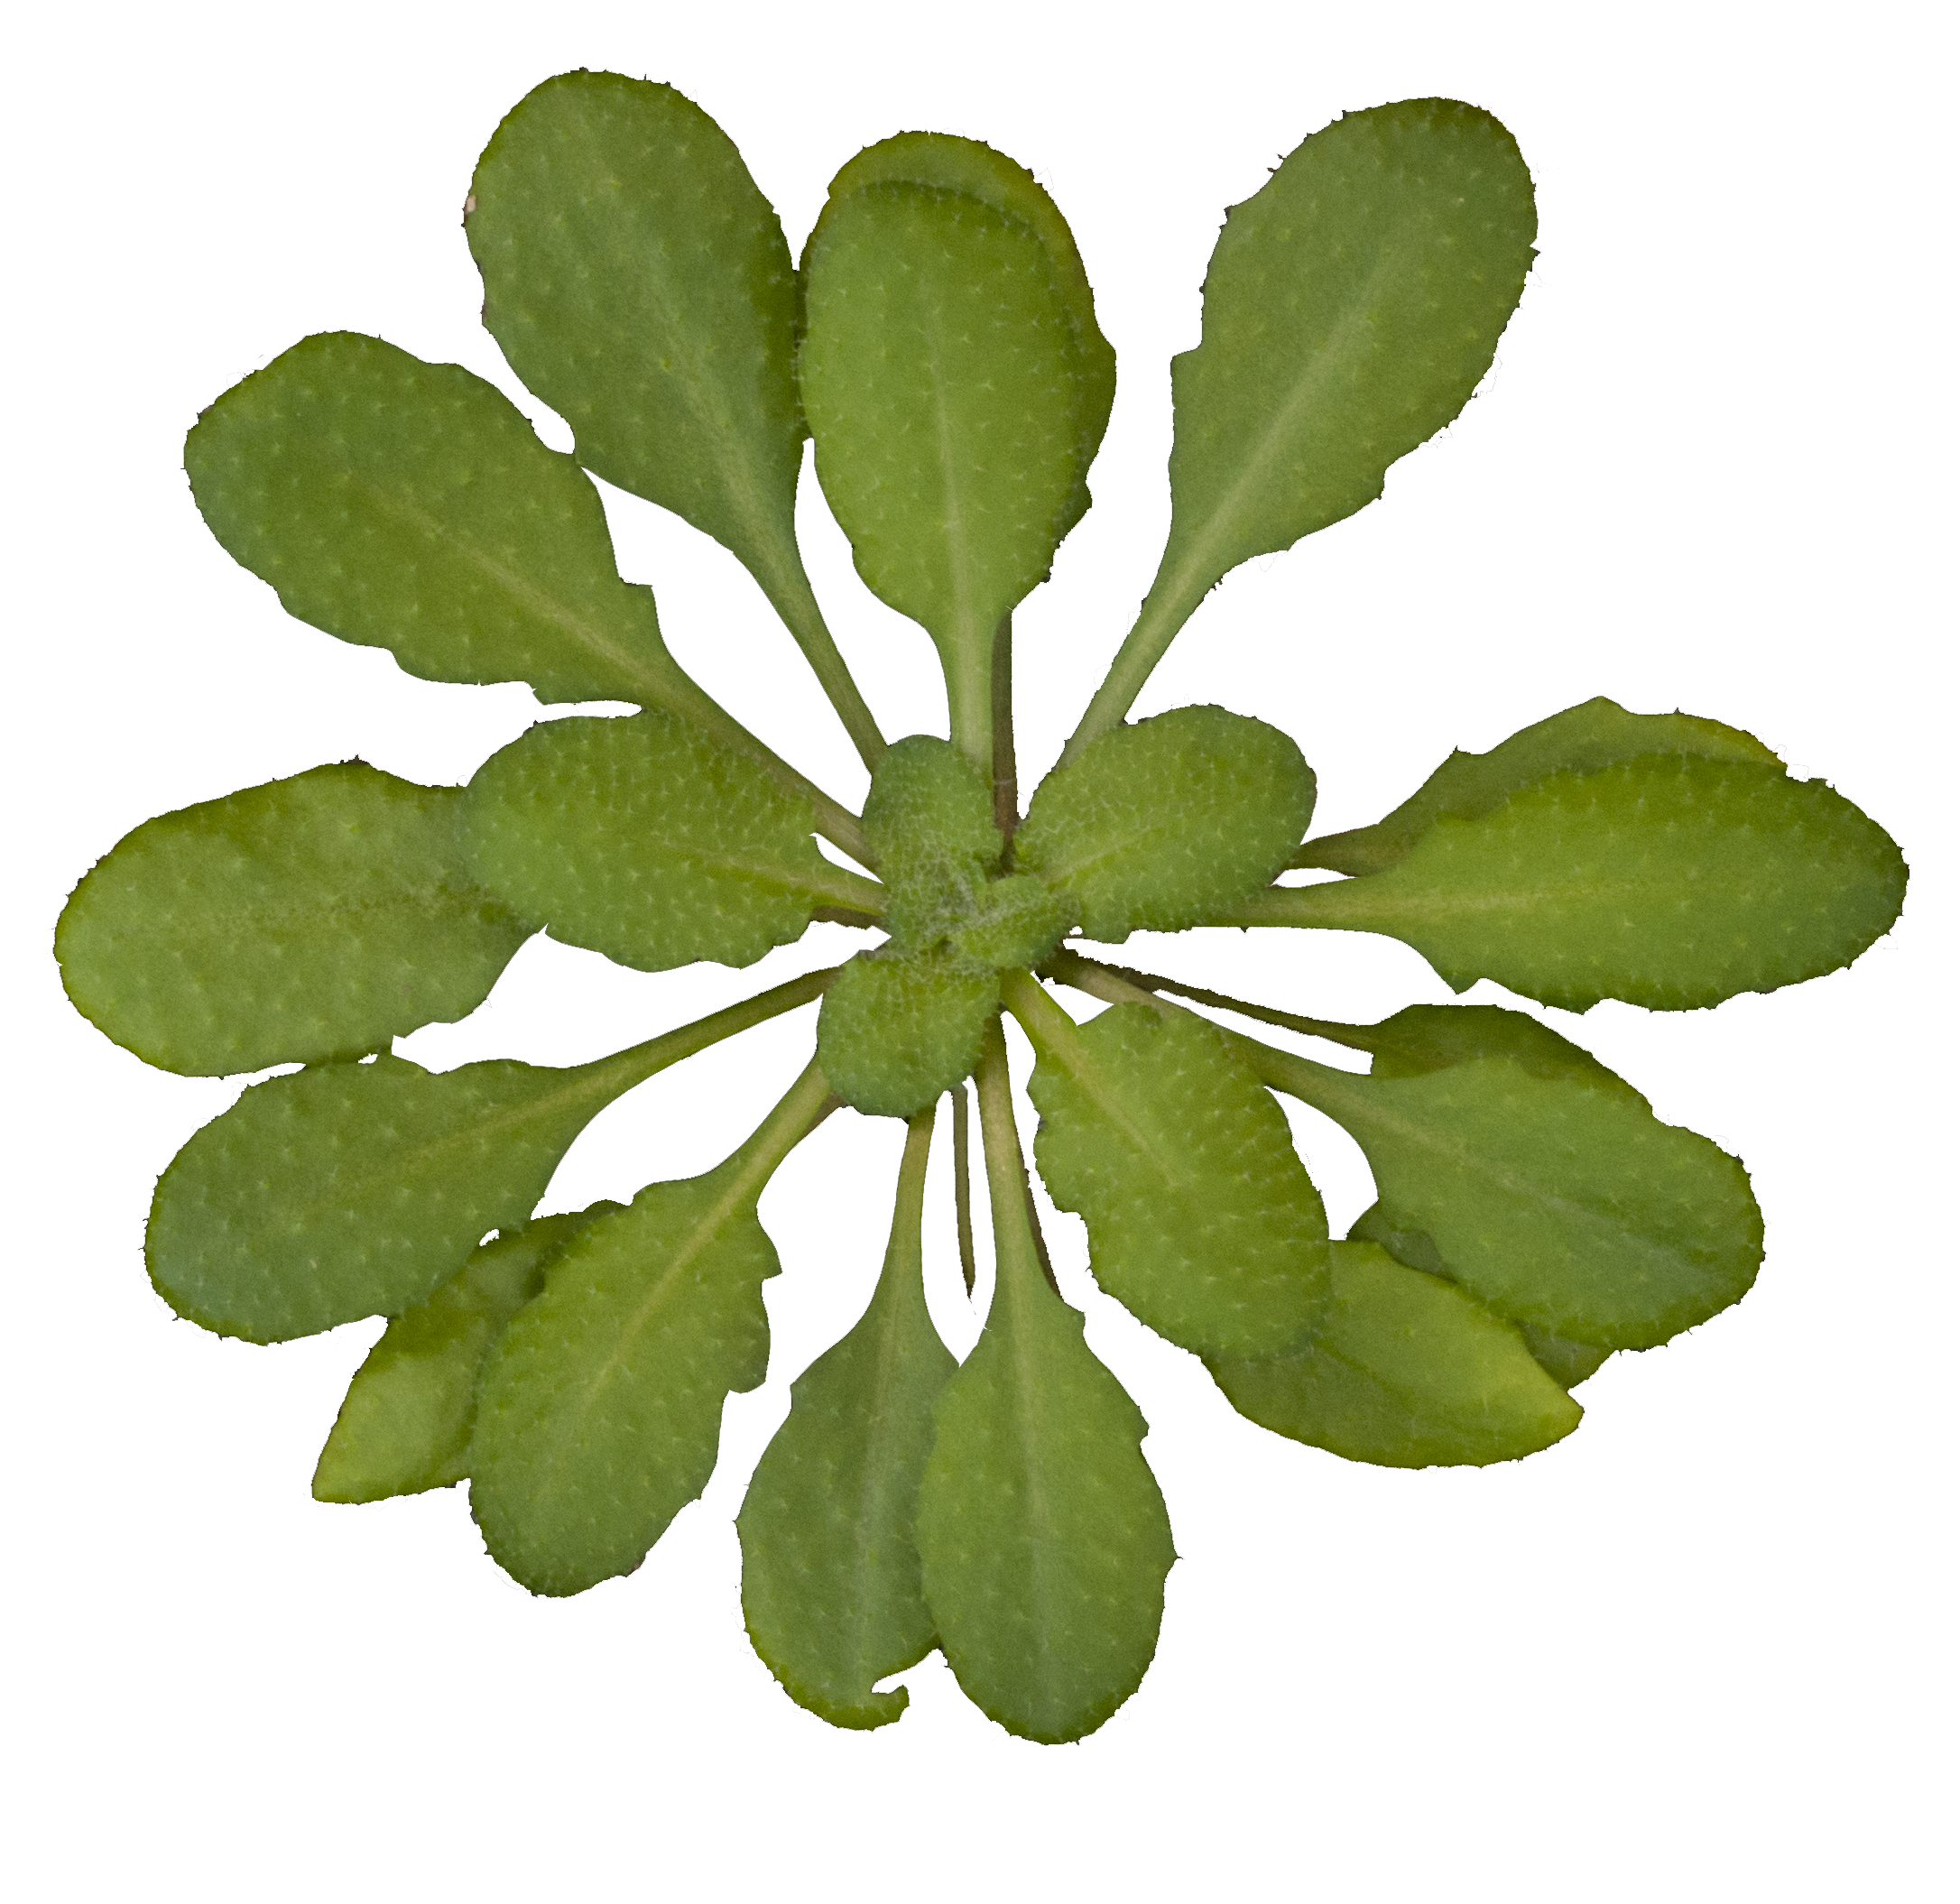 File:Arabidopsis thaliana rosette transparent background.png ... for Plant Transparent Png  303mzq